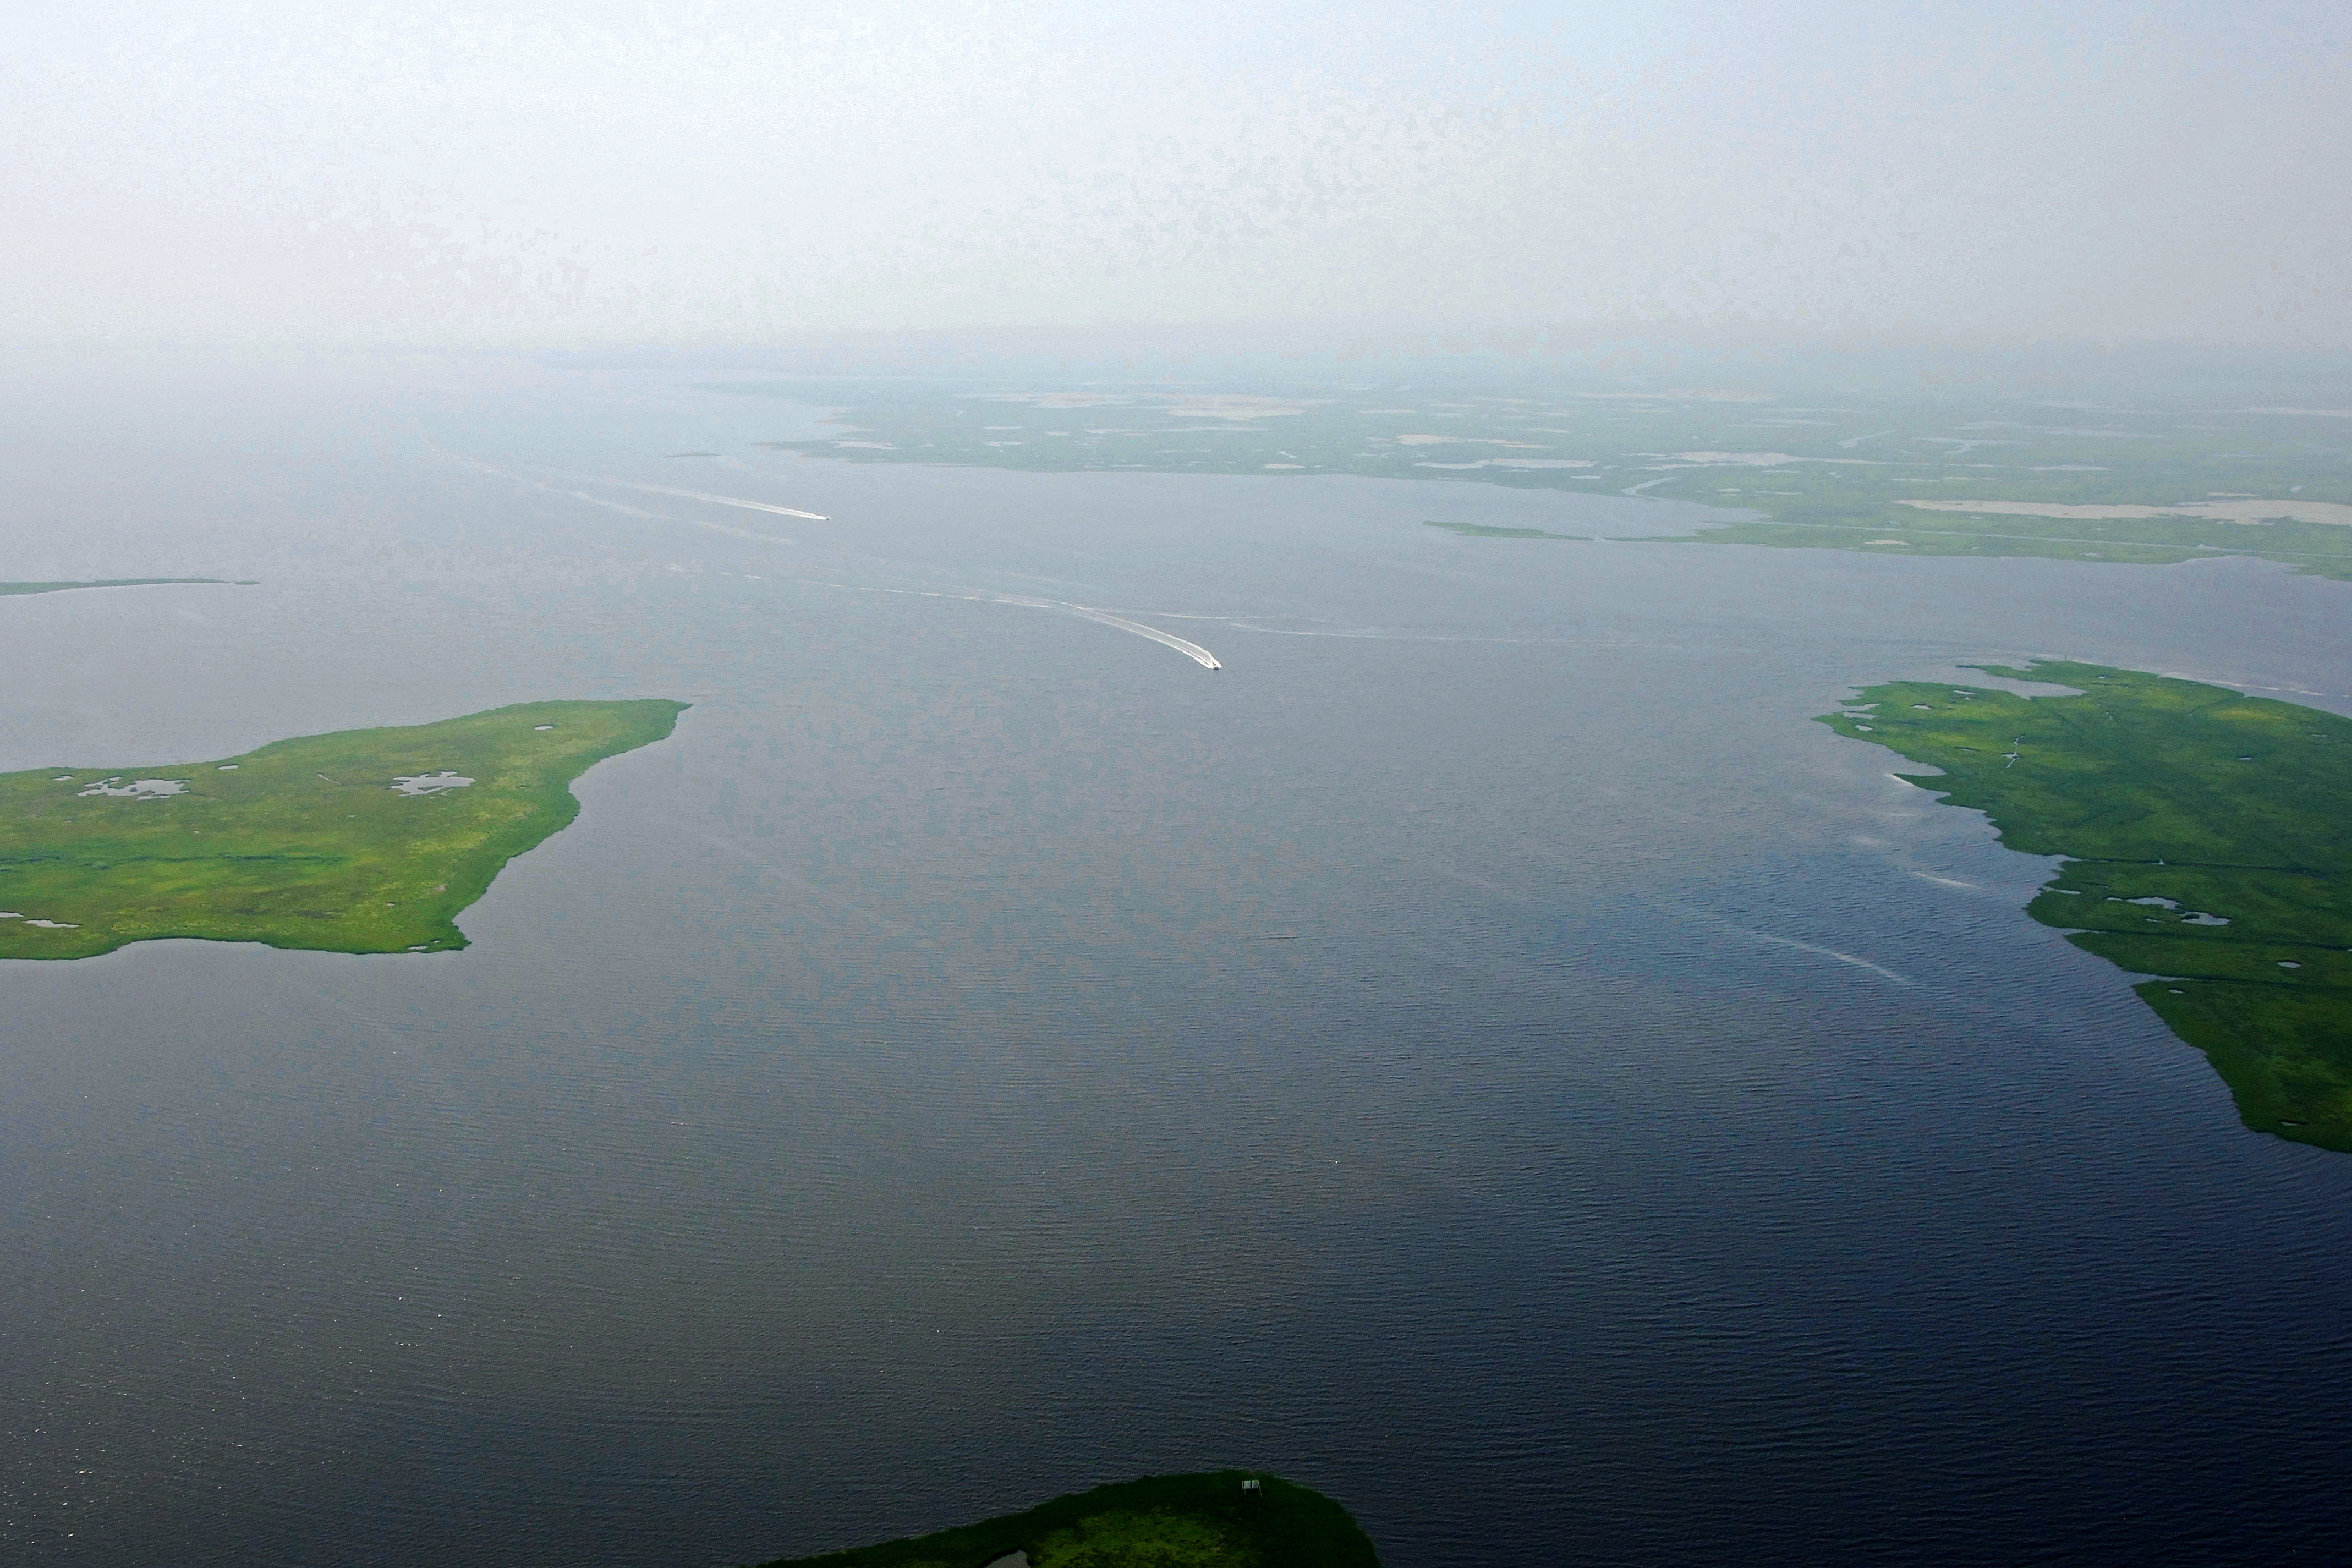 Mullica River Inlet In Mystic Island Nj United States Inlet